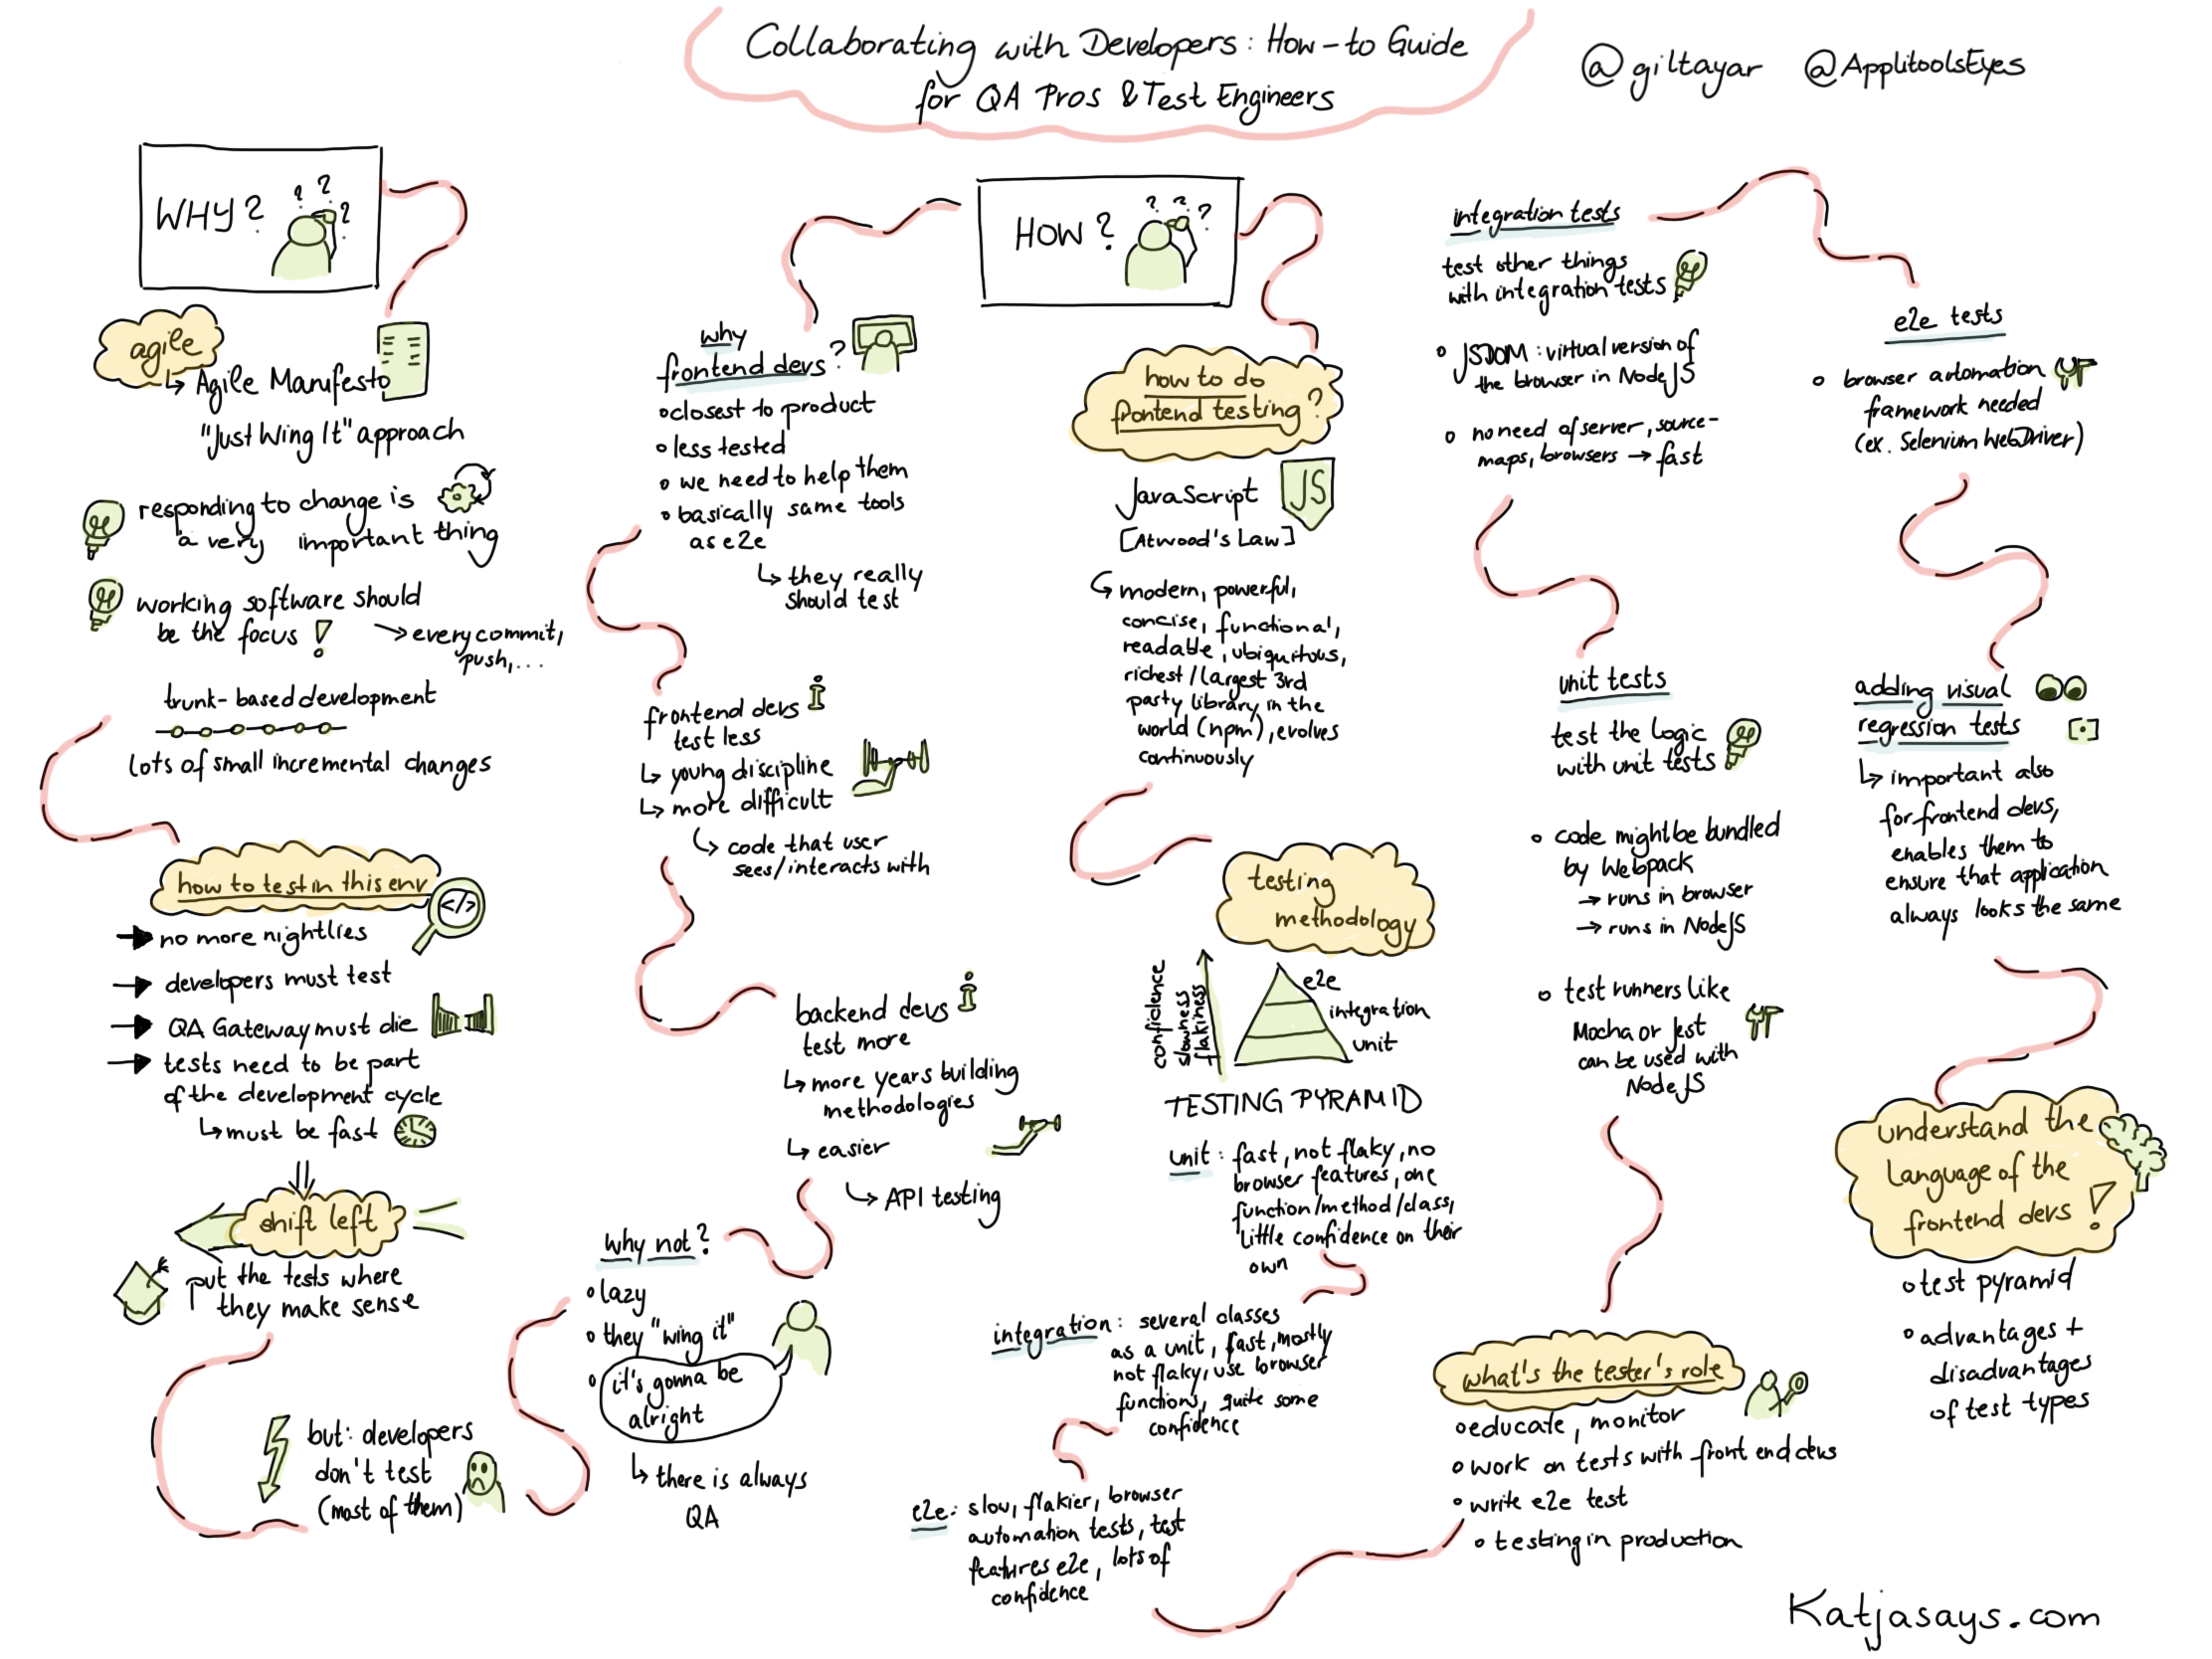 Collaborating with developers - how to guide for qa pros Sketchnote